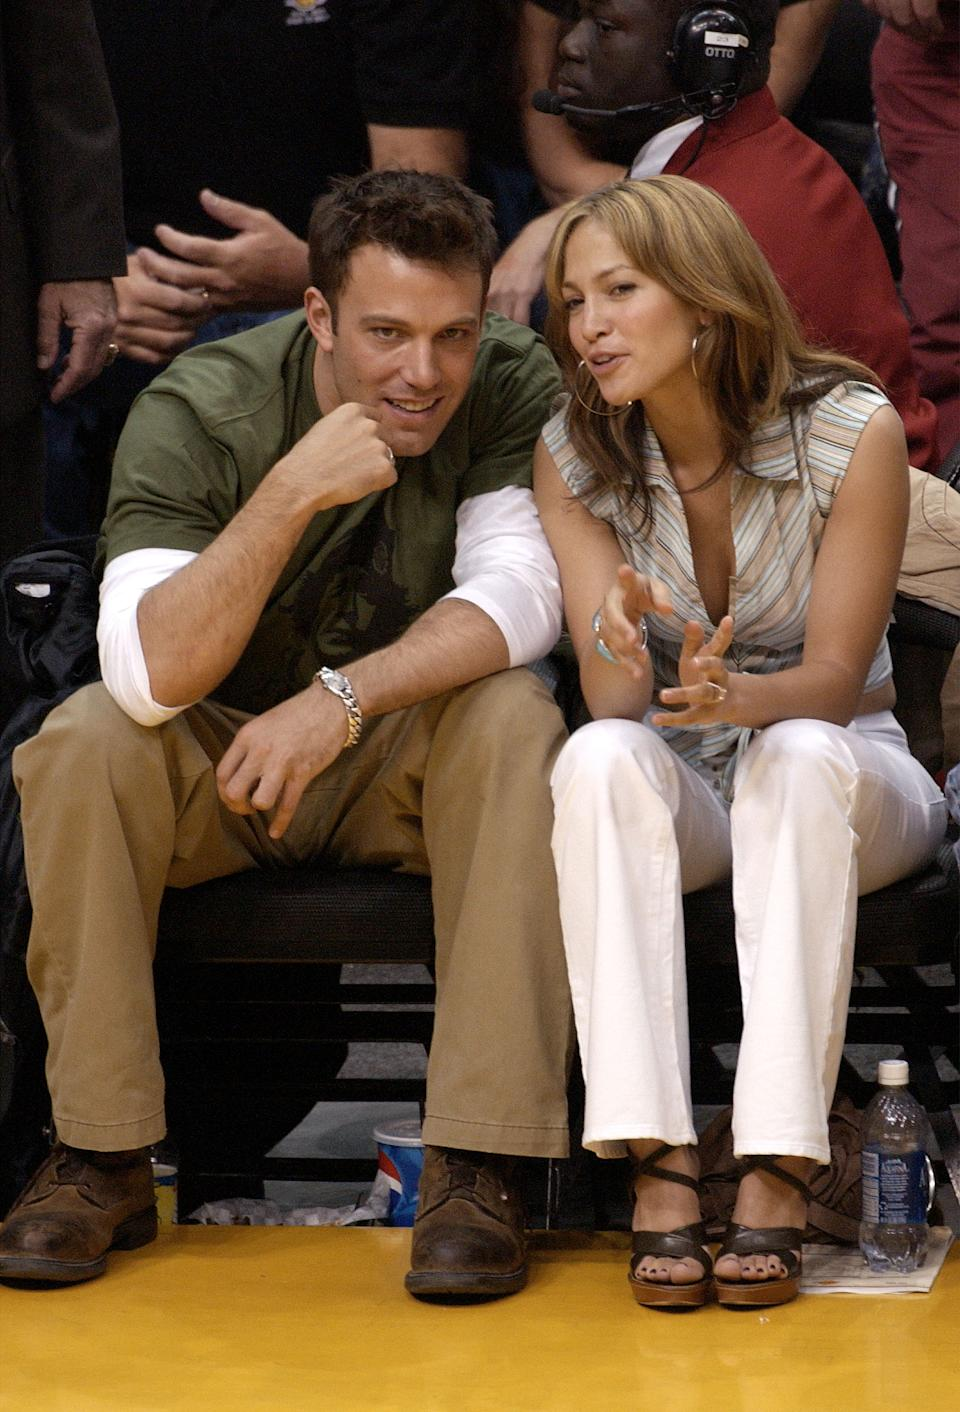 Ben Affleck and Jennifer Lopez attend the Los Angeles Lakers v. San Antonio Spurs playoff game at the Staples Center May 11, 2003 in Los Angeles, California. (Getty Images)